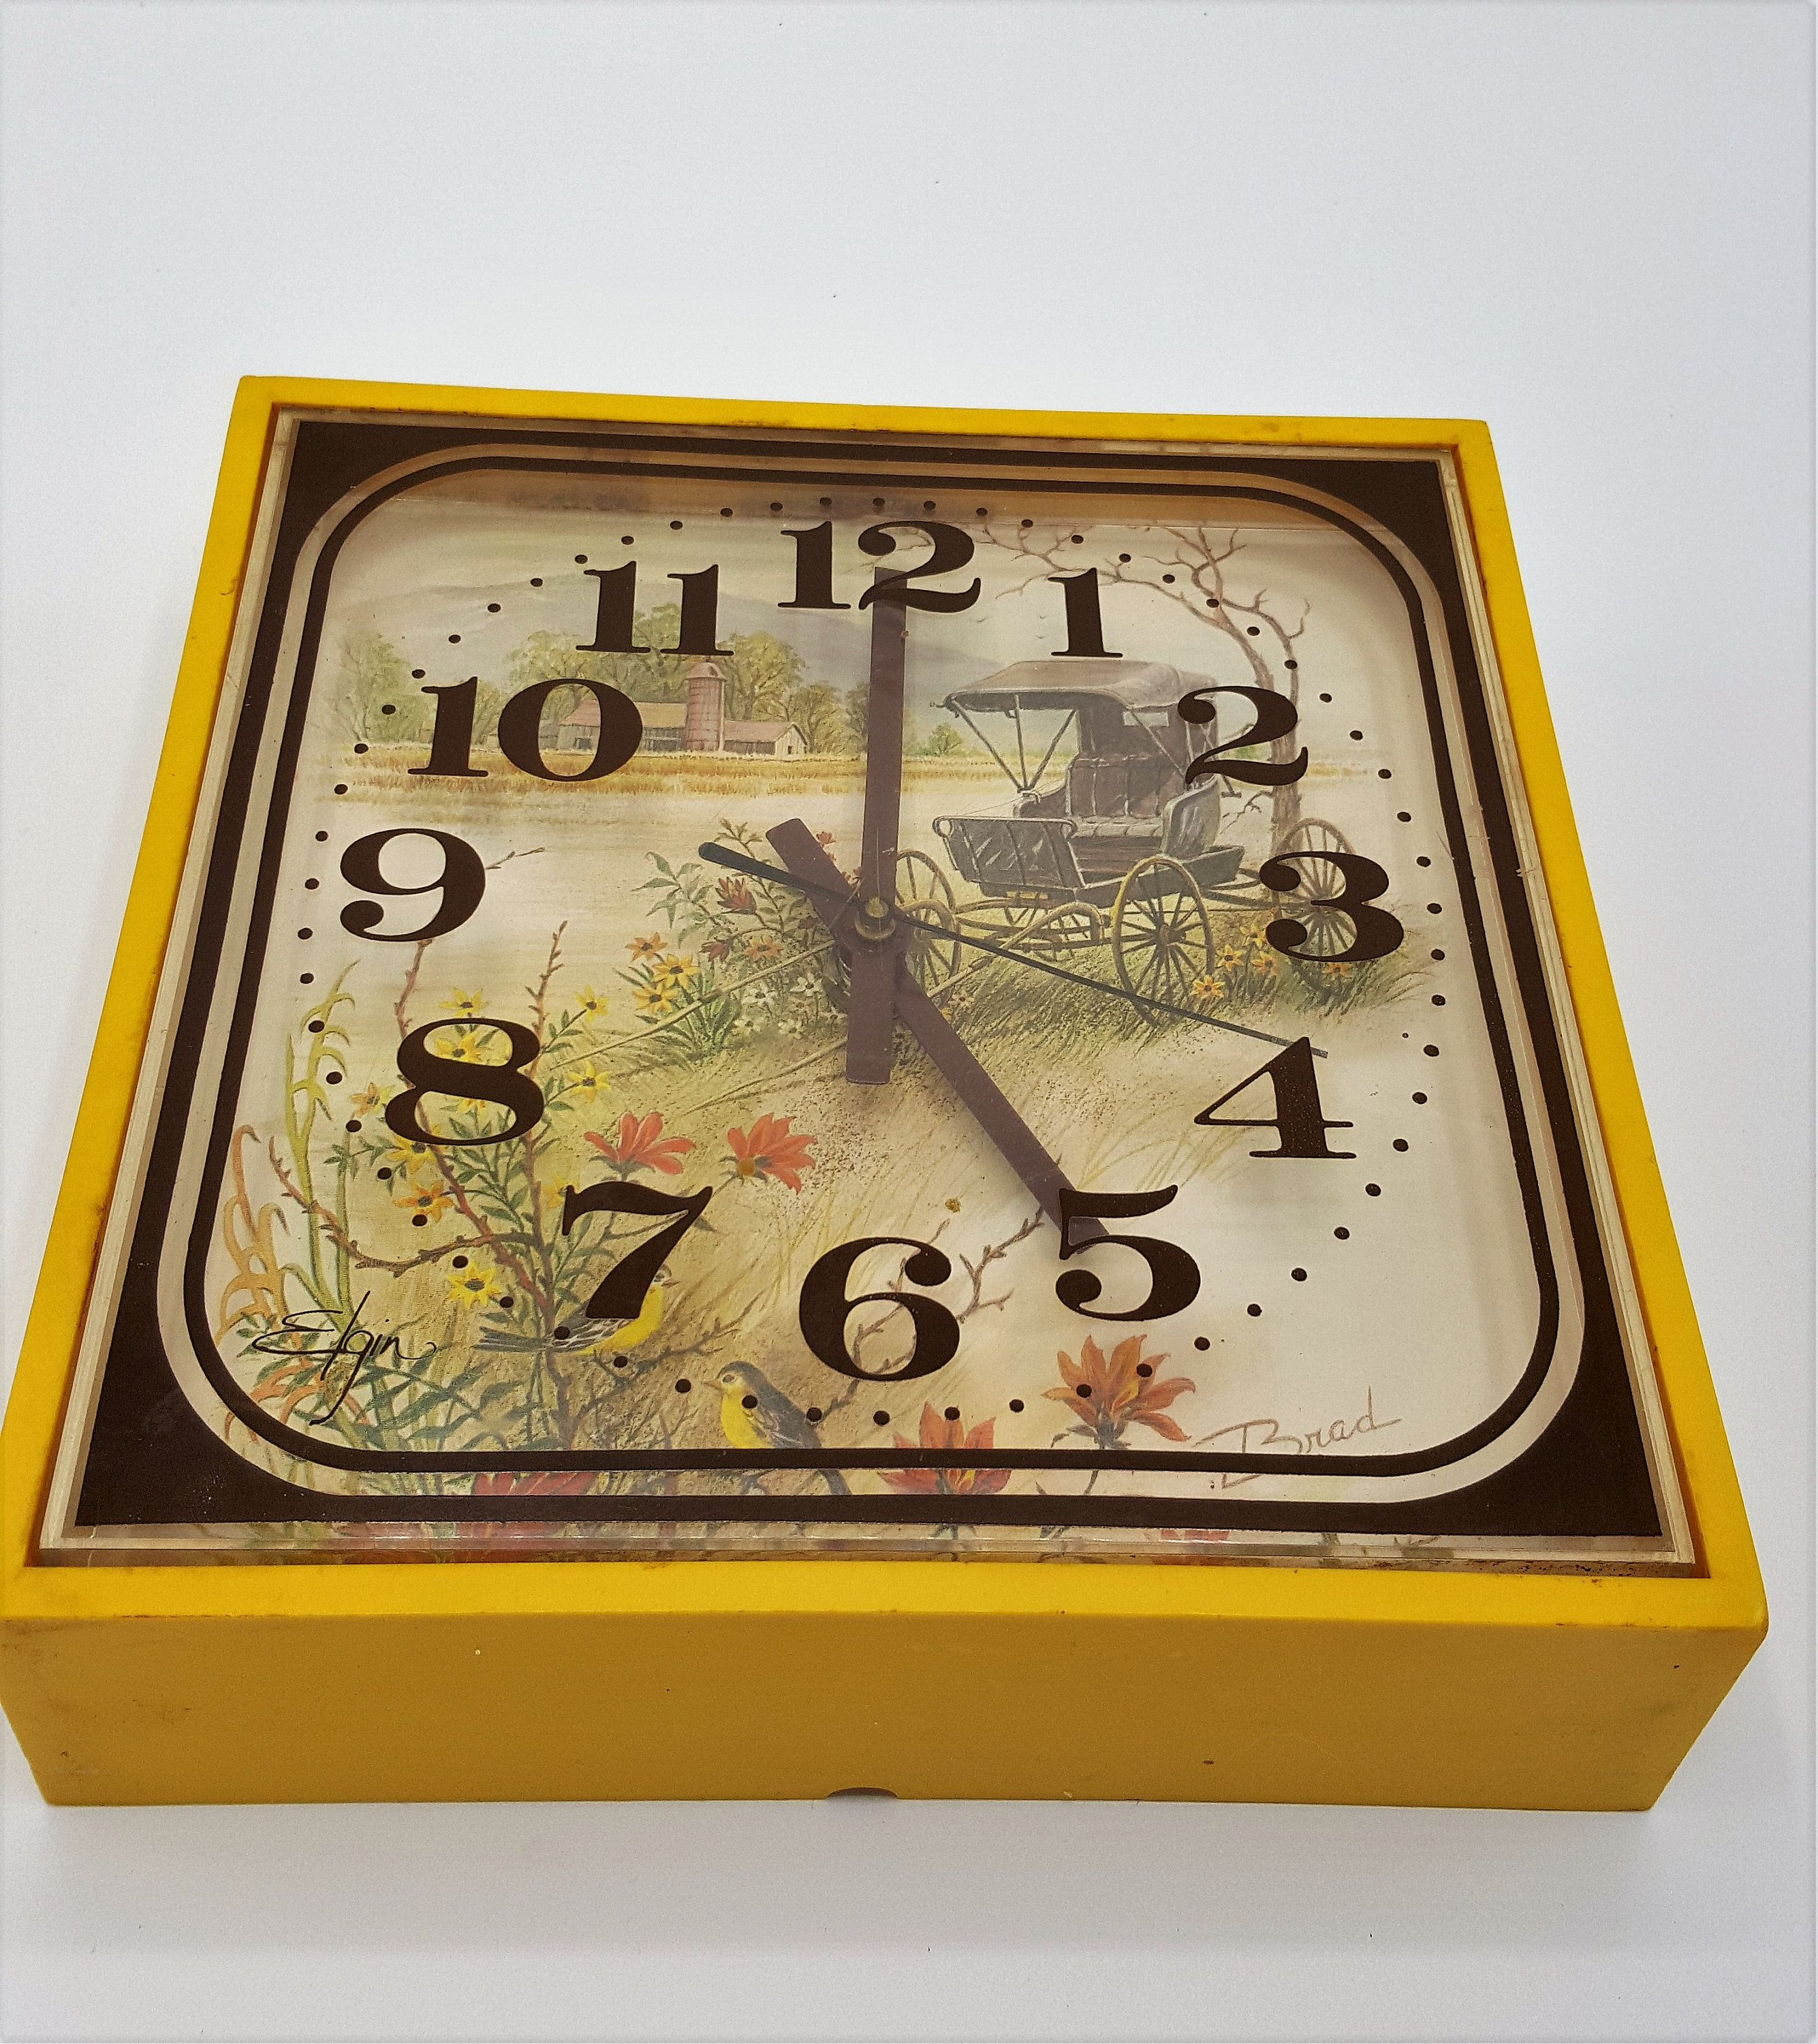 Vintage Country Kitchen clock yellow Kitchen clock cottage cabin clock by  Elgin Japan Retro Yellow kitchen wall clock Farmhouse clock | Vintage clock,  Kitchen clocks, Kitchen wall clocks